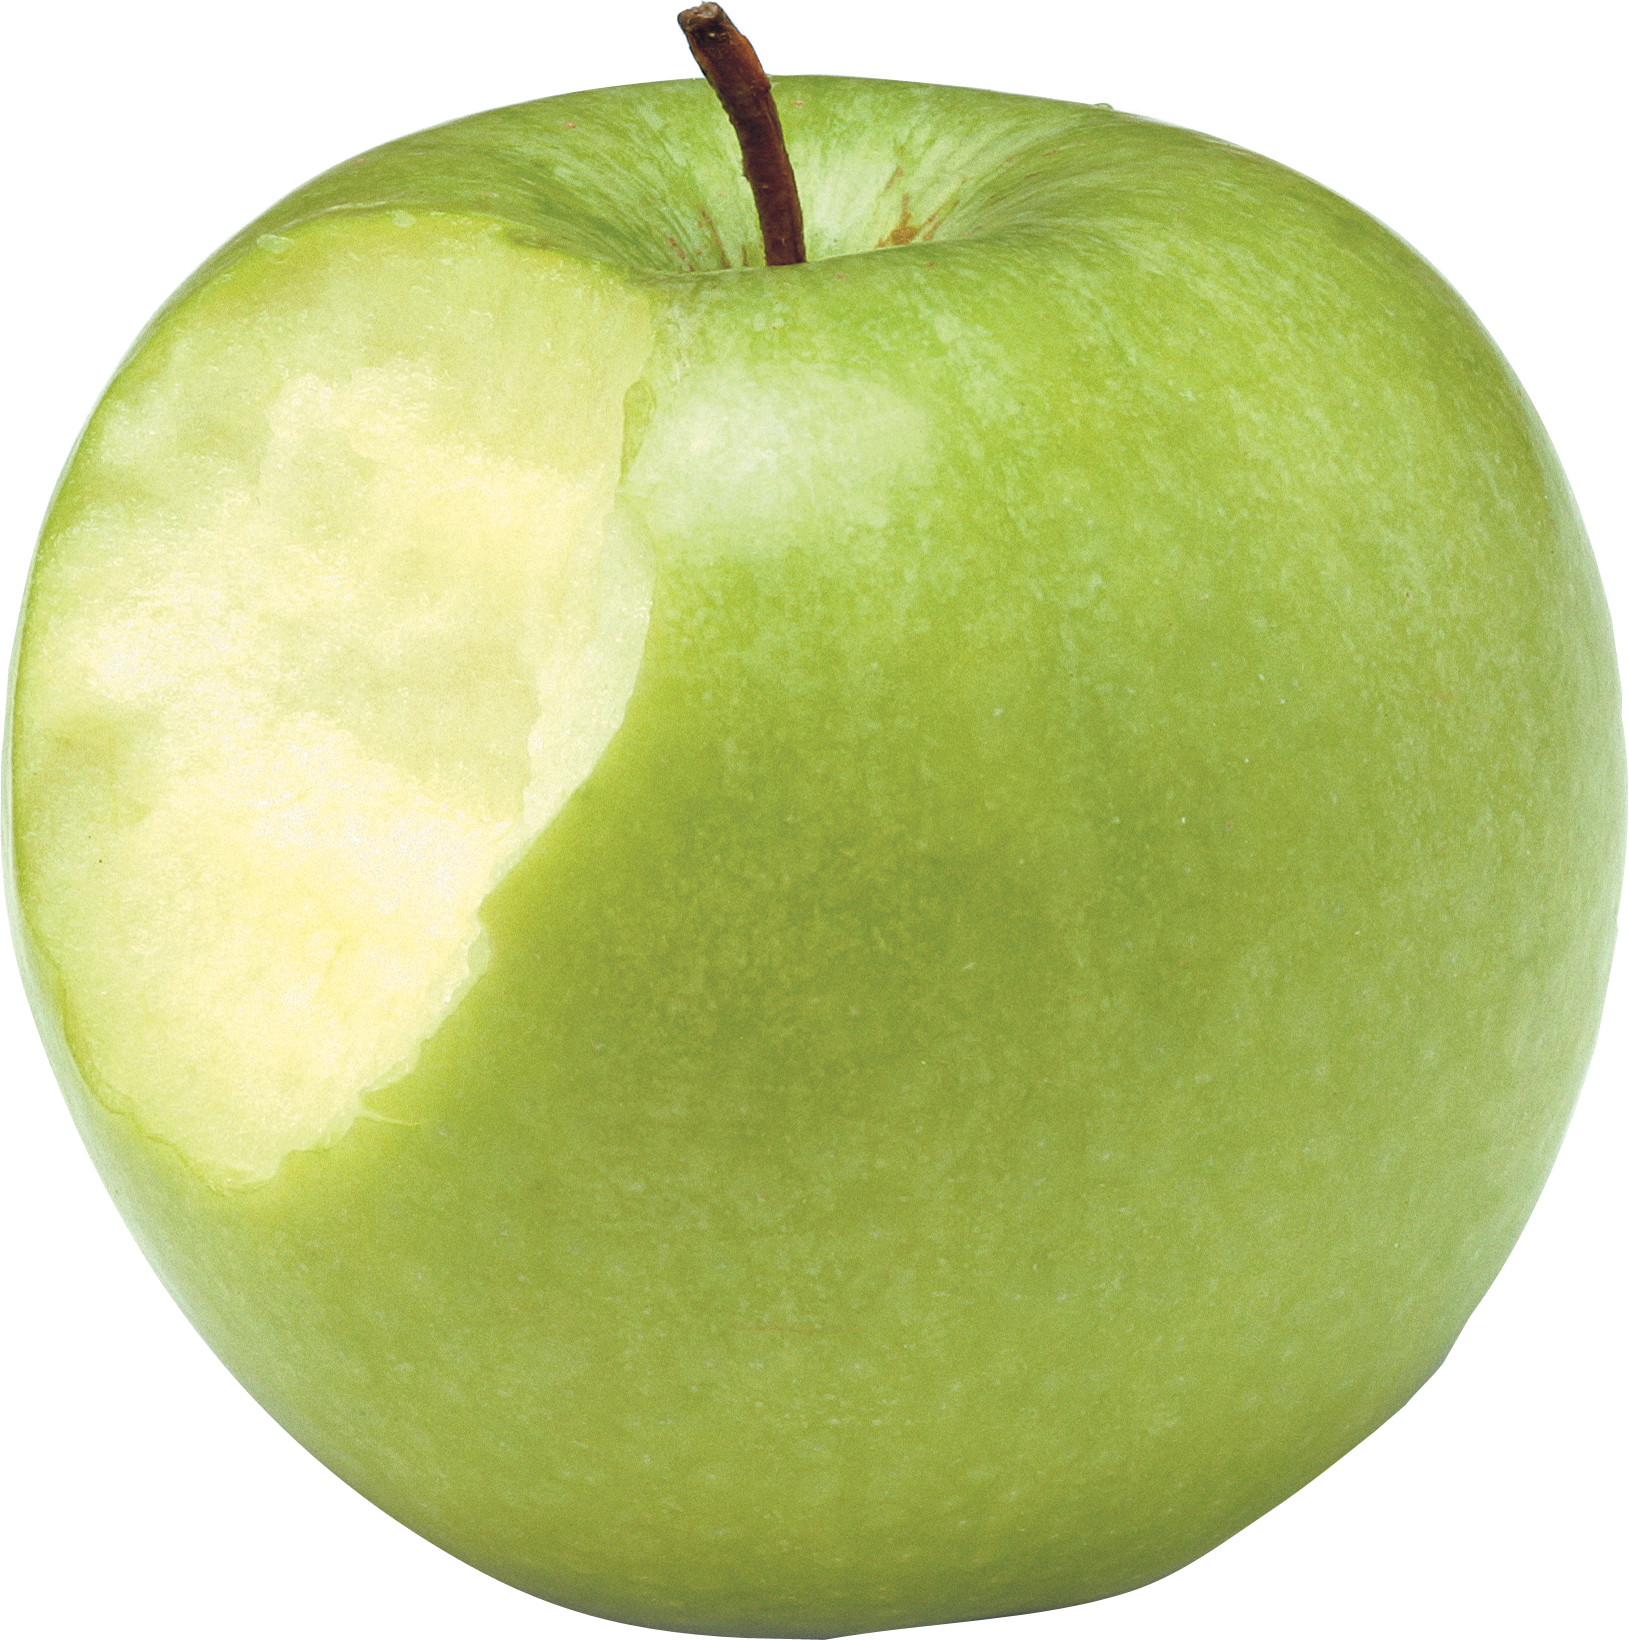 Bitten apple png. Images free download green